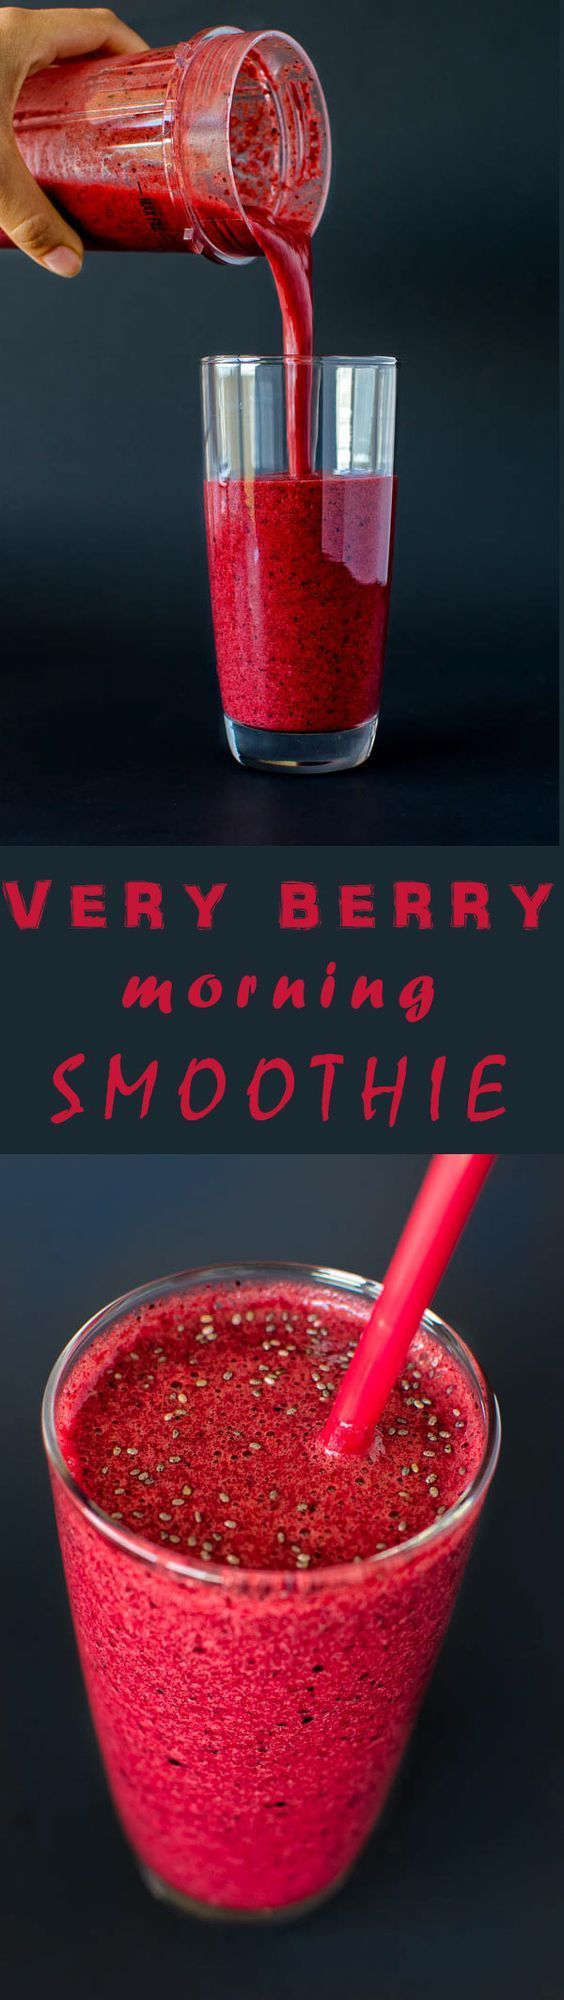 Perfect way to start your day! Banana, apple, cherries and black currants blended to perfection with orange juice. Yum!